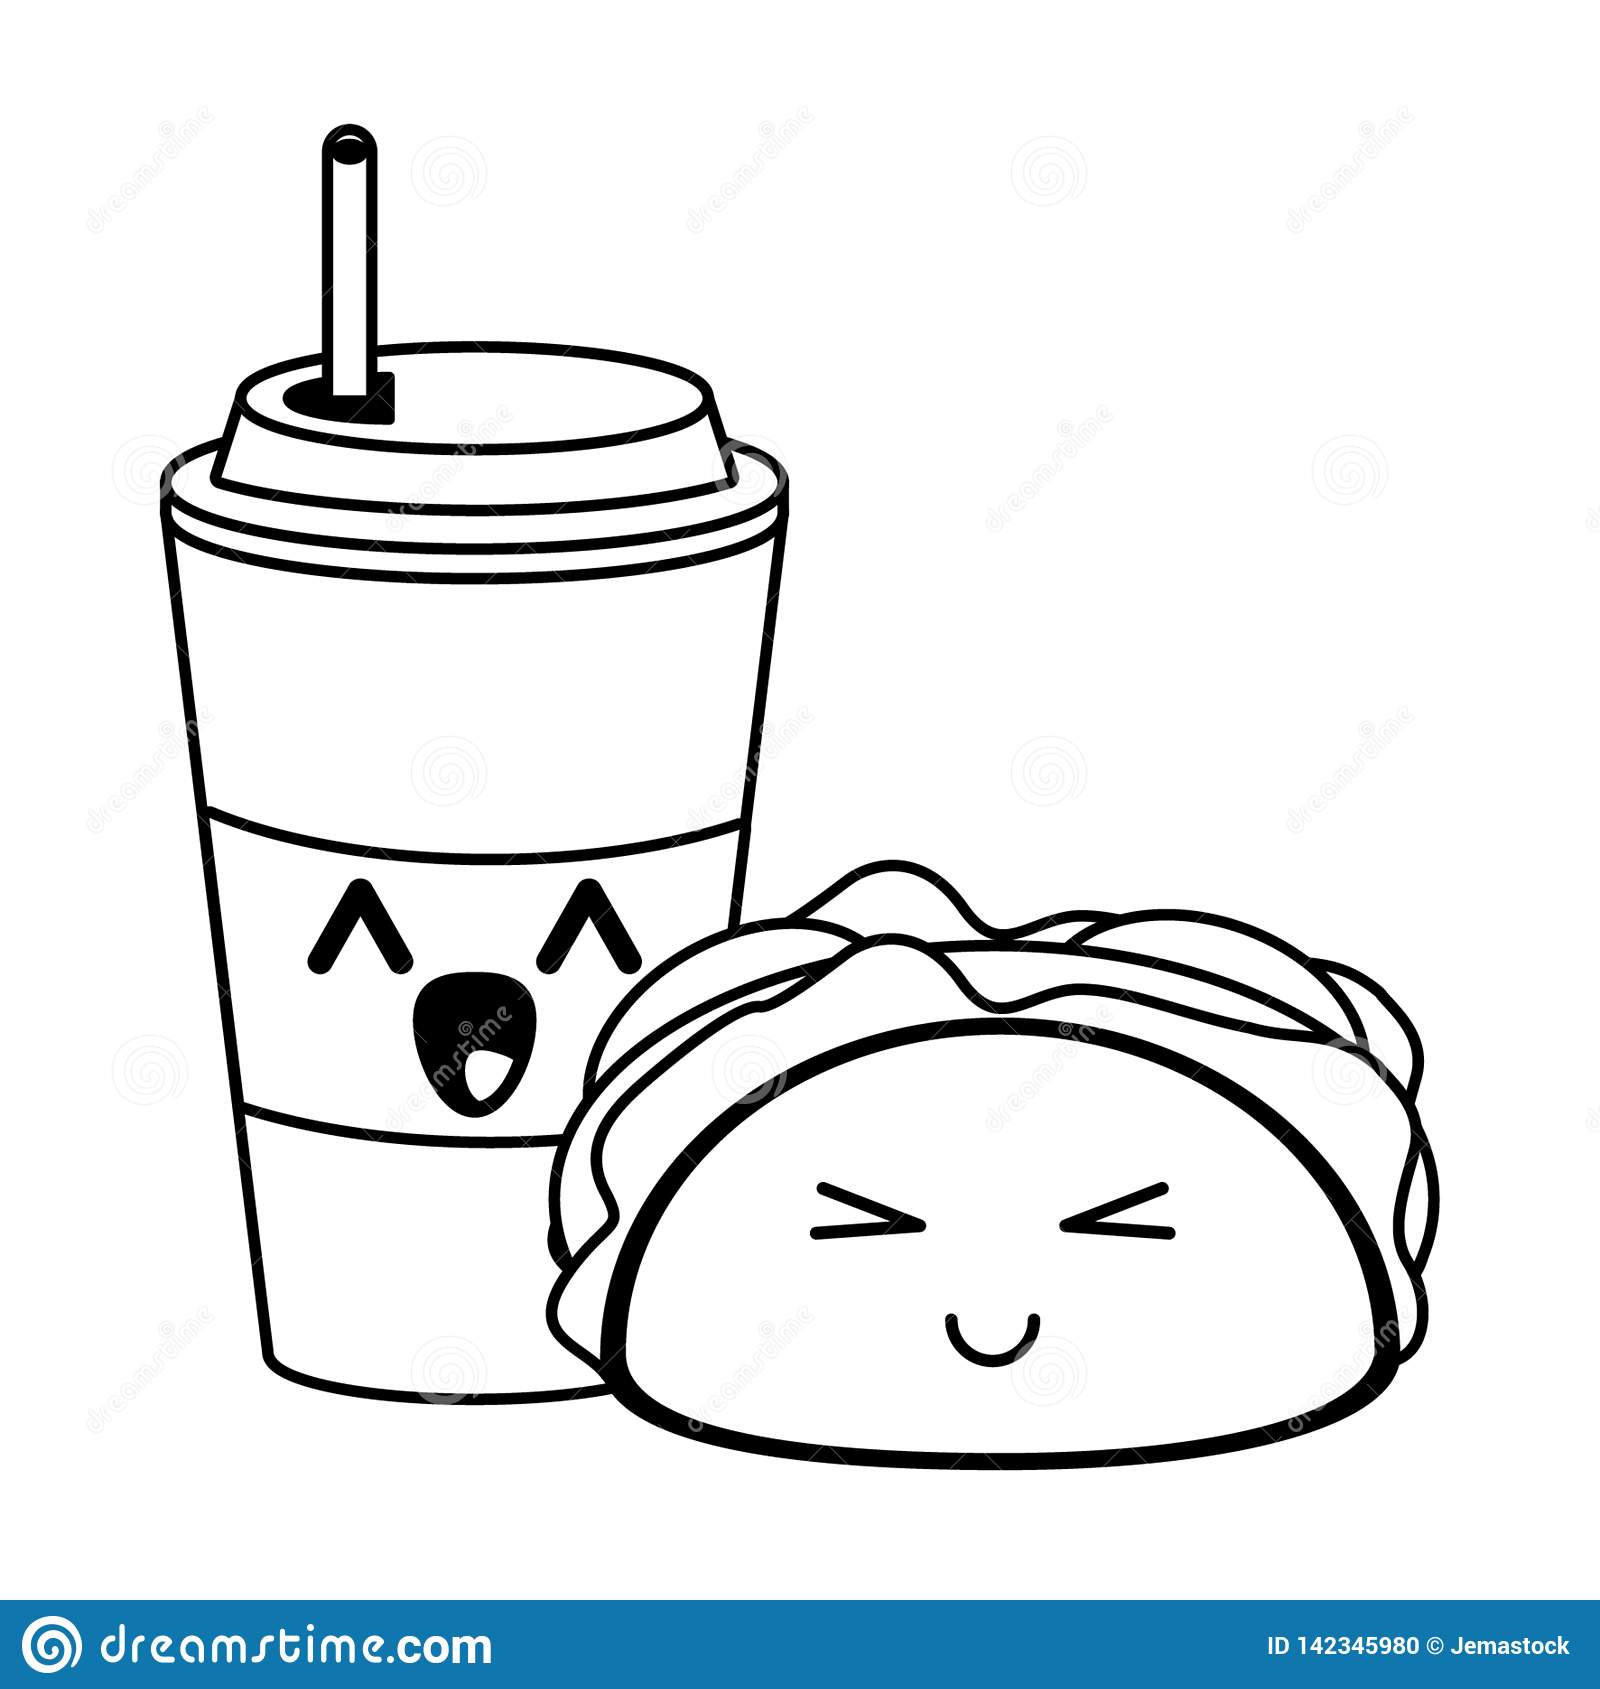 Fast Food Kawaii Cartoon In Black And White Stock Vector